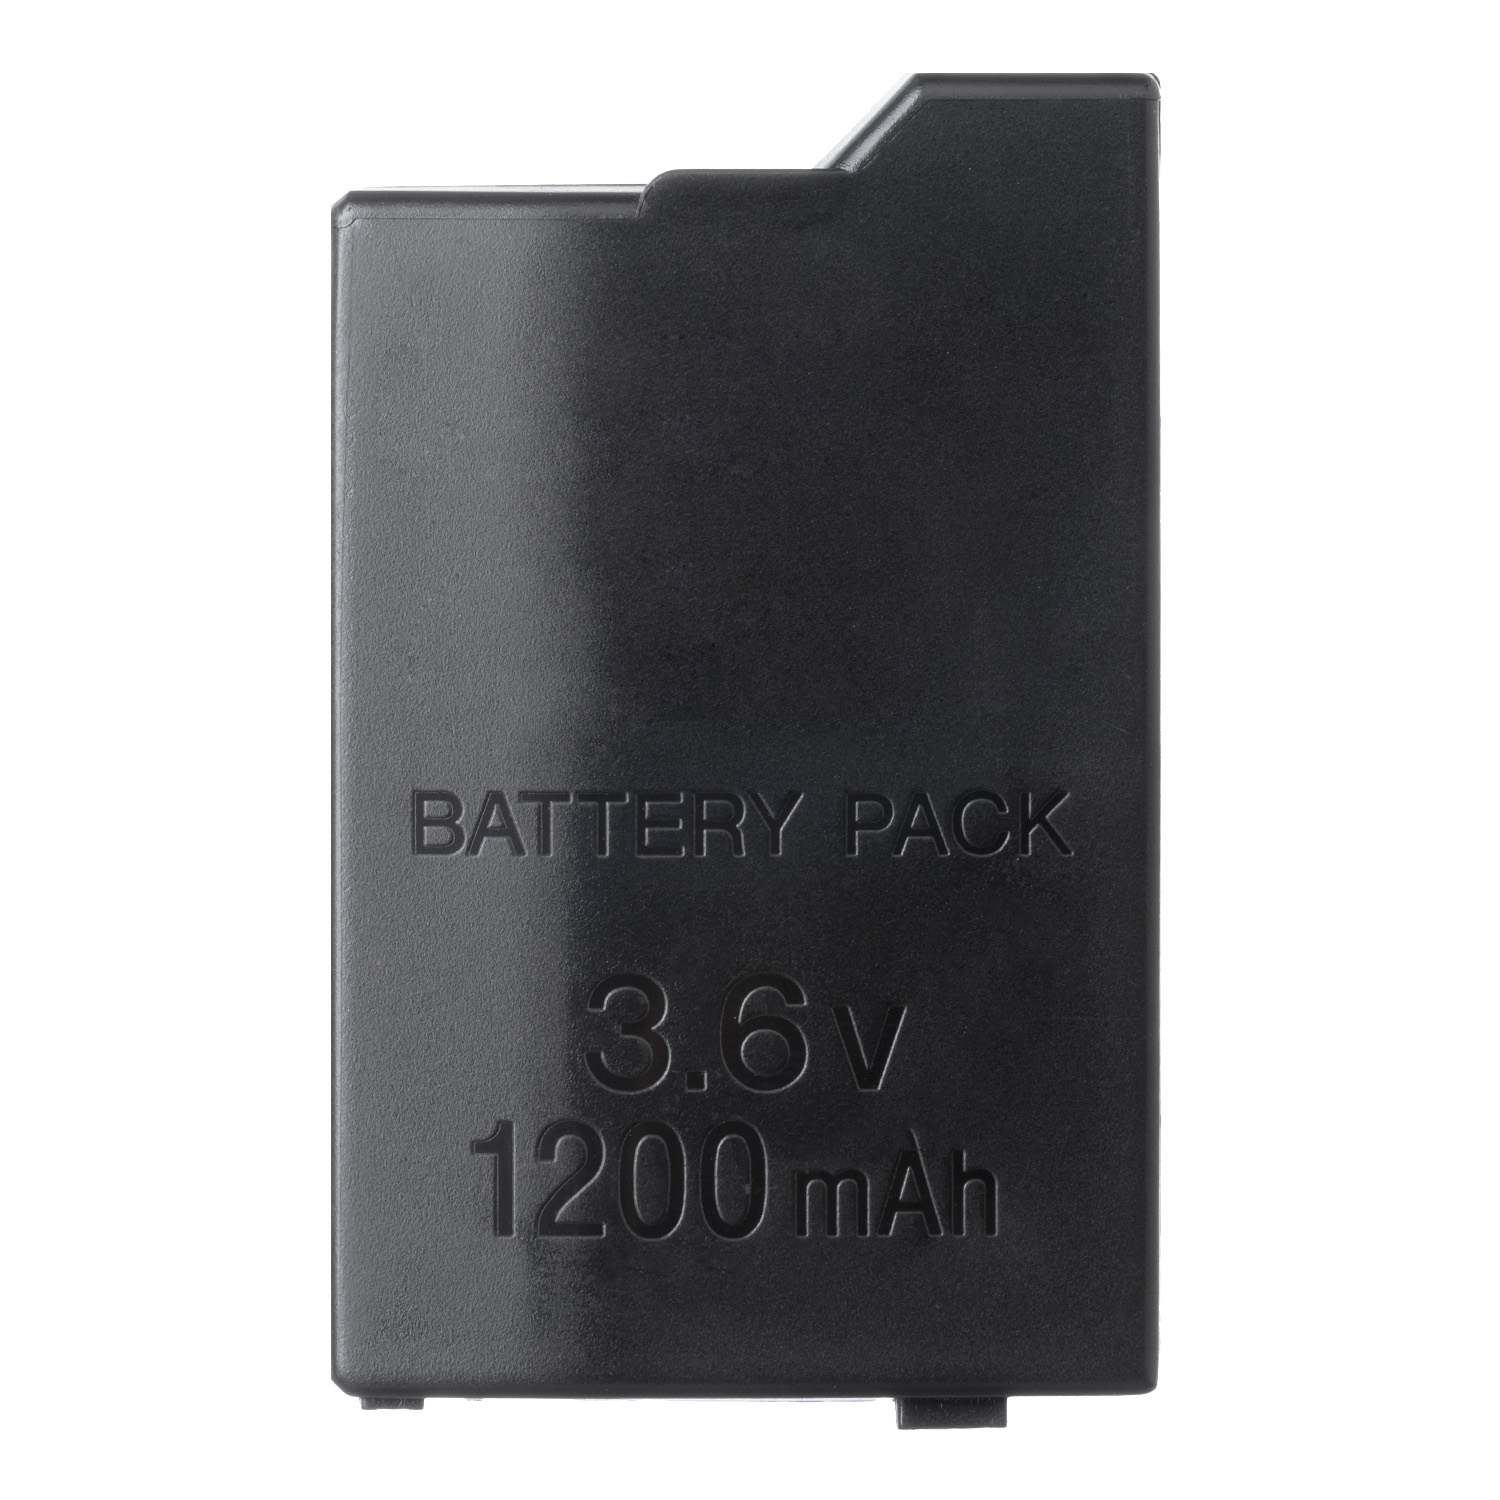 OSTENT 1200mAh 3.6V Lithium Ion Rechargeable Battery Pack Replacement for Sony PSP 2000/3000 PSP-S110 Console(China)